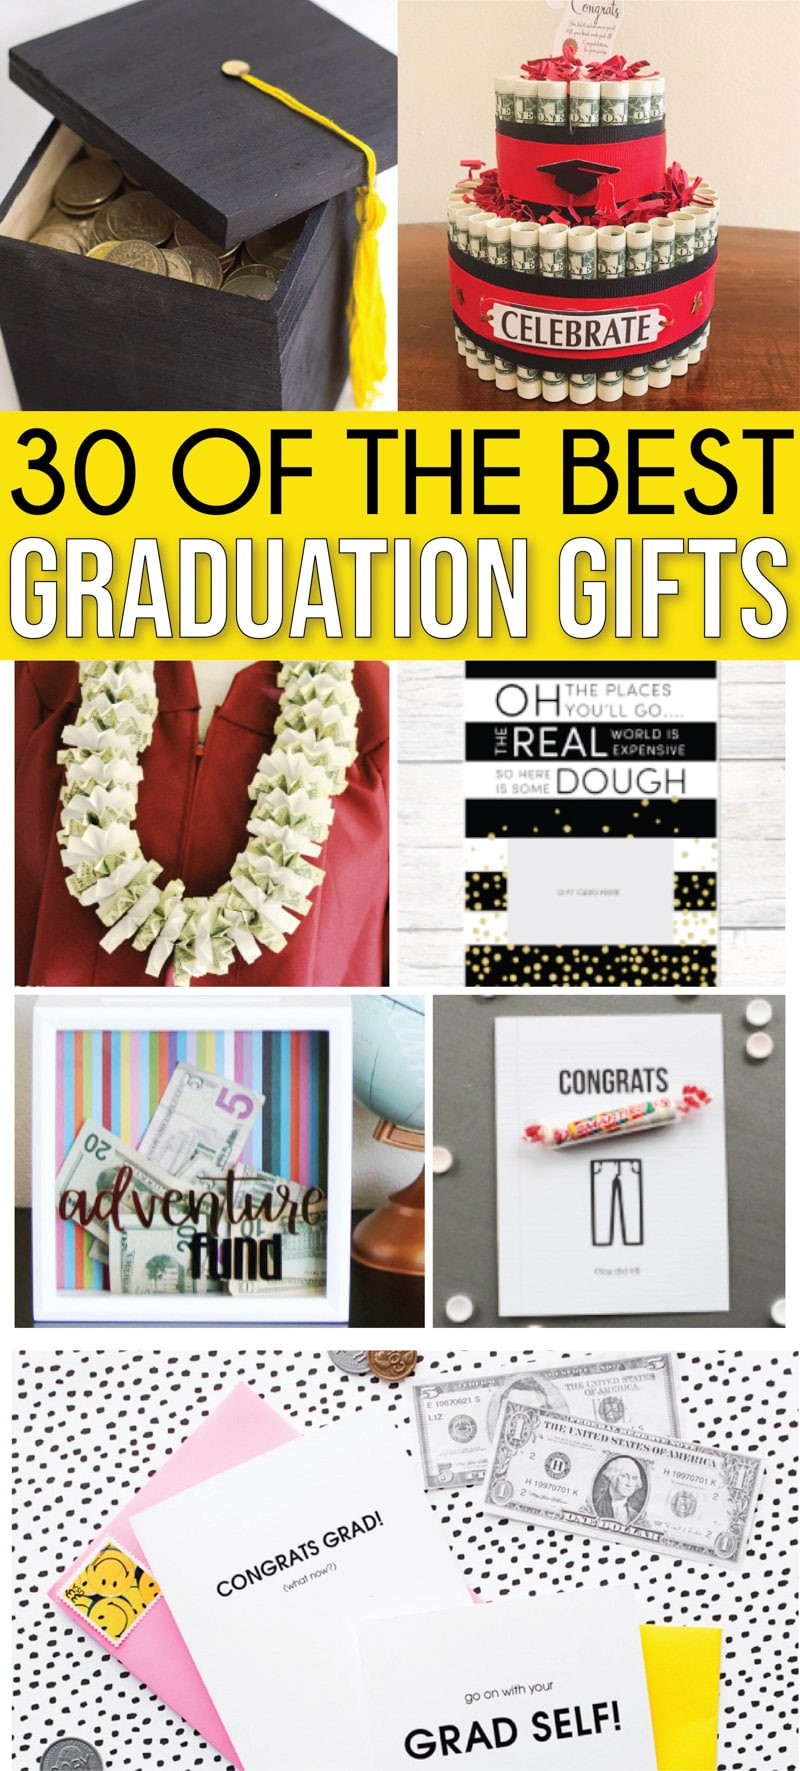 Friends Graduation Gift Ideas  30 Awesome High School Graduation Gifts Graduates Actually